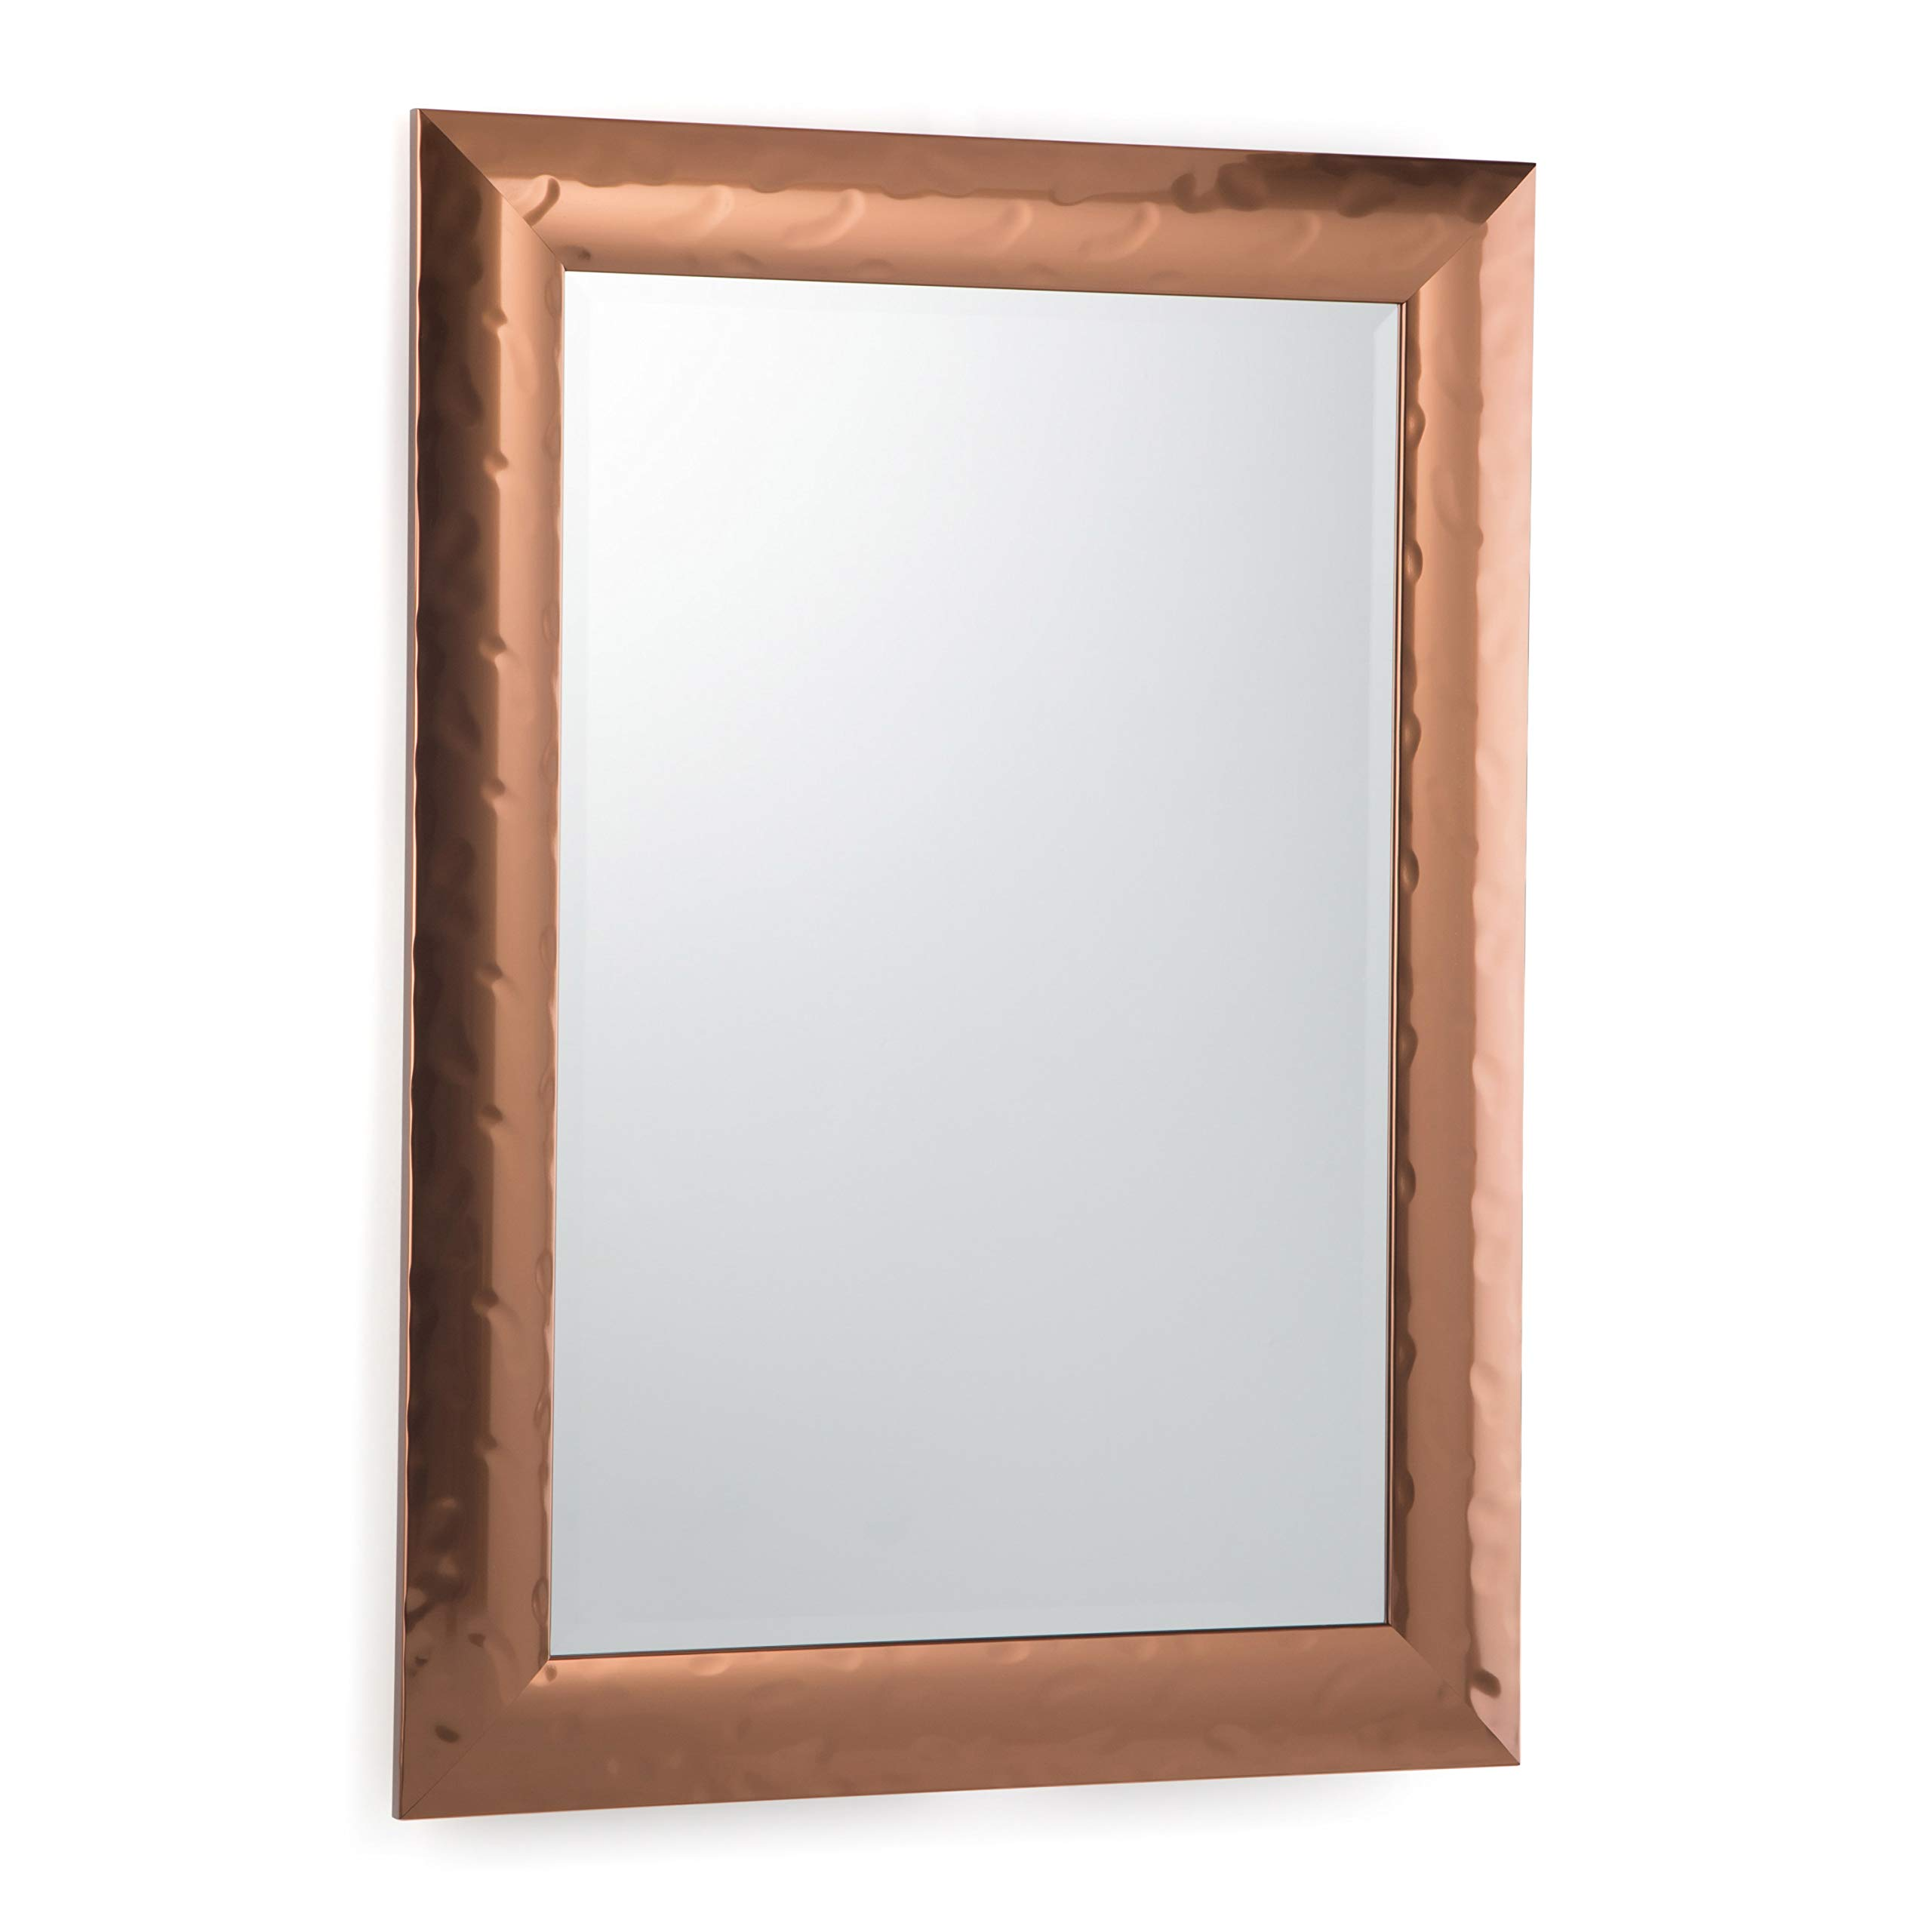 Simpli Home AXCMATH-4432 Athena 42 inch x 30 inch Rectangular Transitional Décor Mirror in Copper